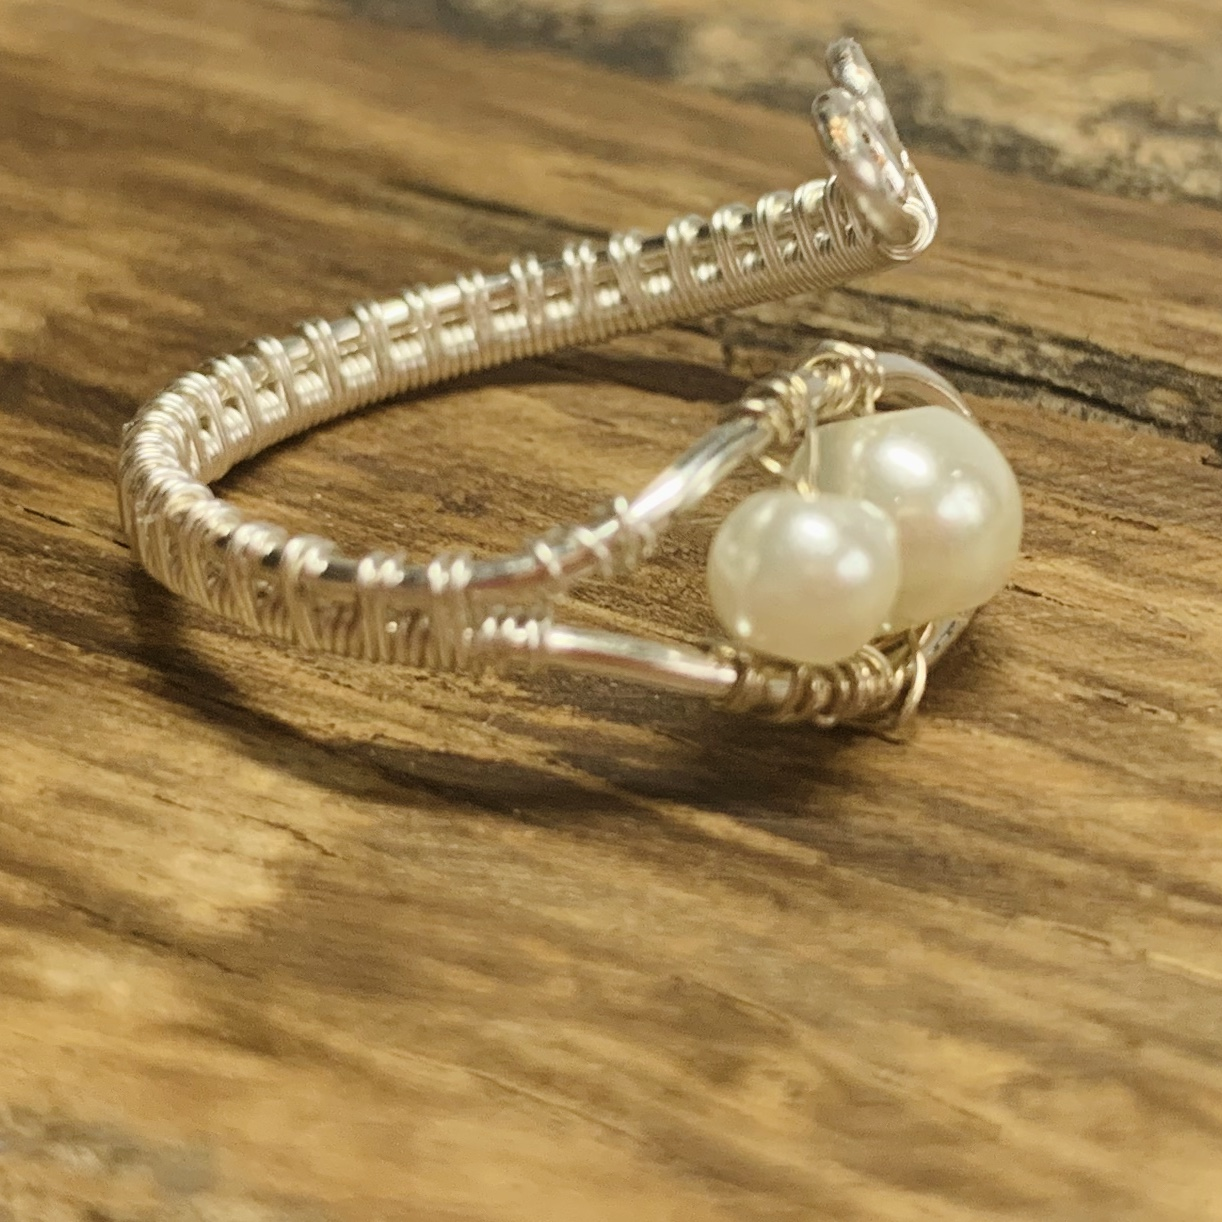 Adjustable Ring – Silver Plated Wire With Pearl White Beads